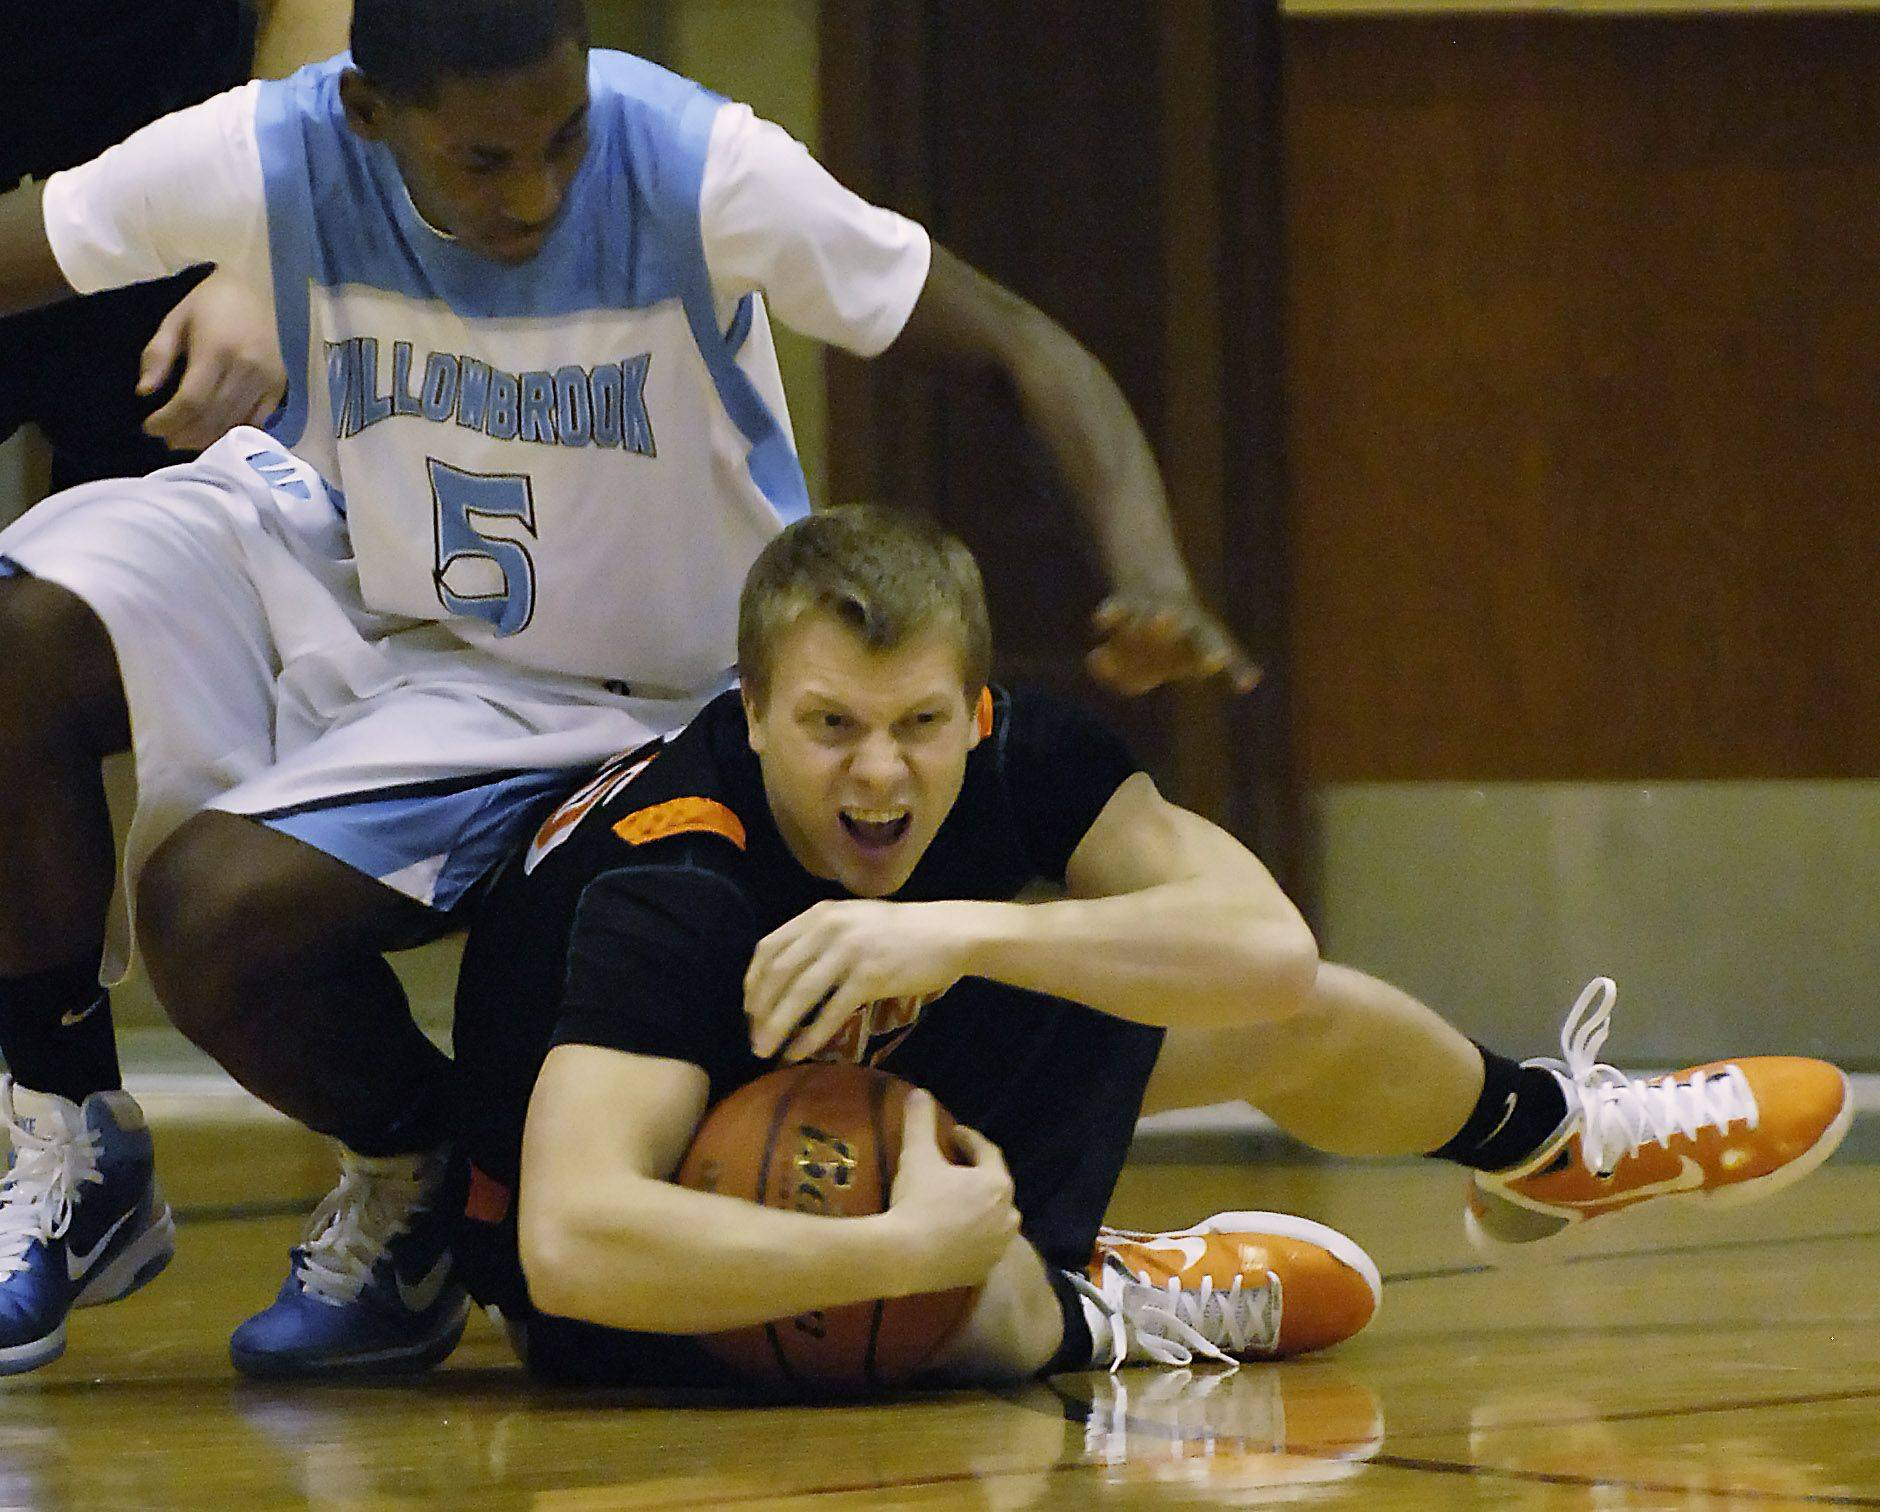 St. Charles East's Zach Zajicek protects the ball as Willowbrook's Tiger Greene plays defense.